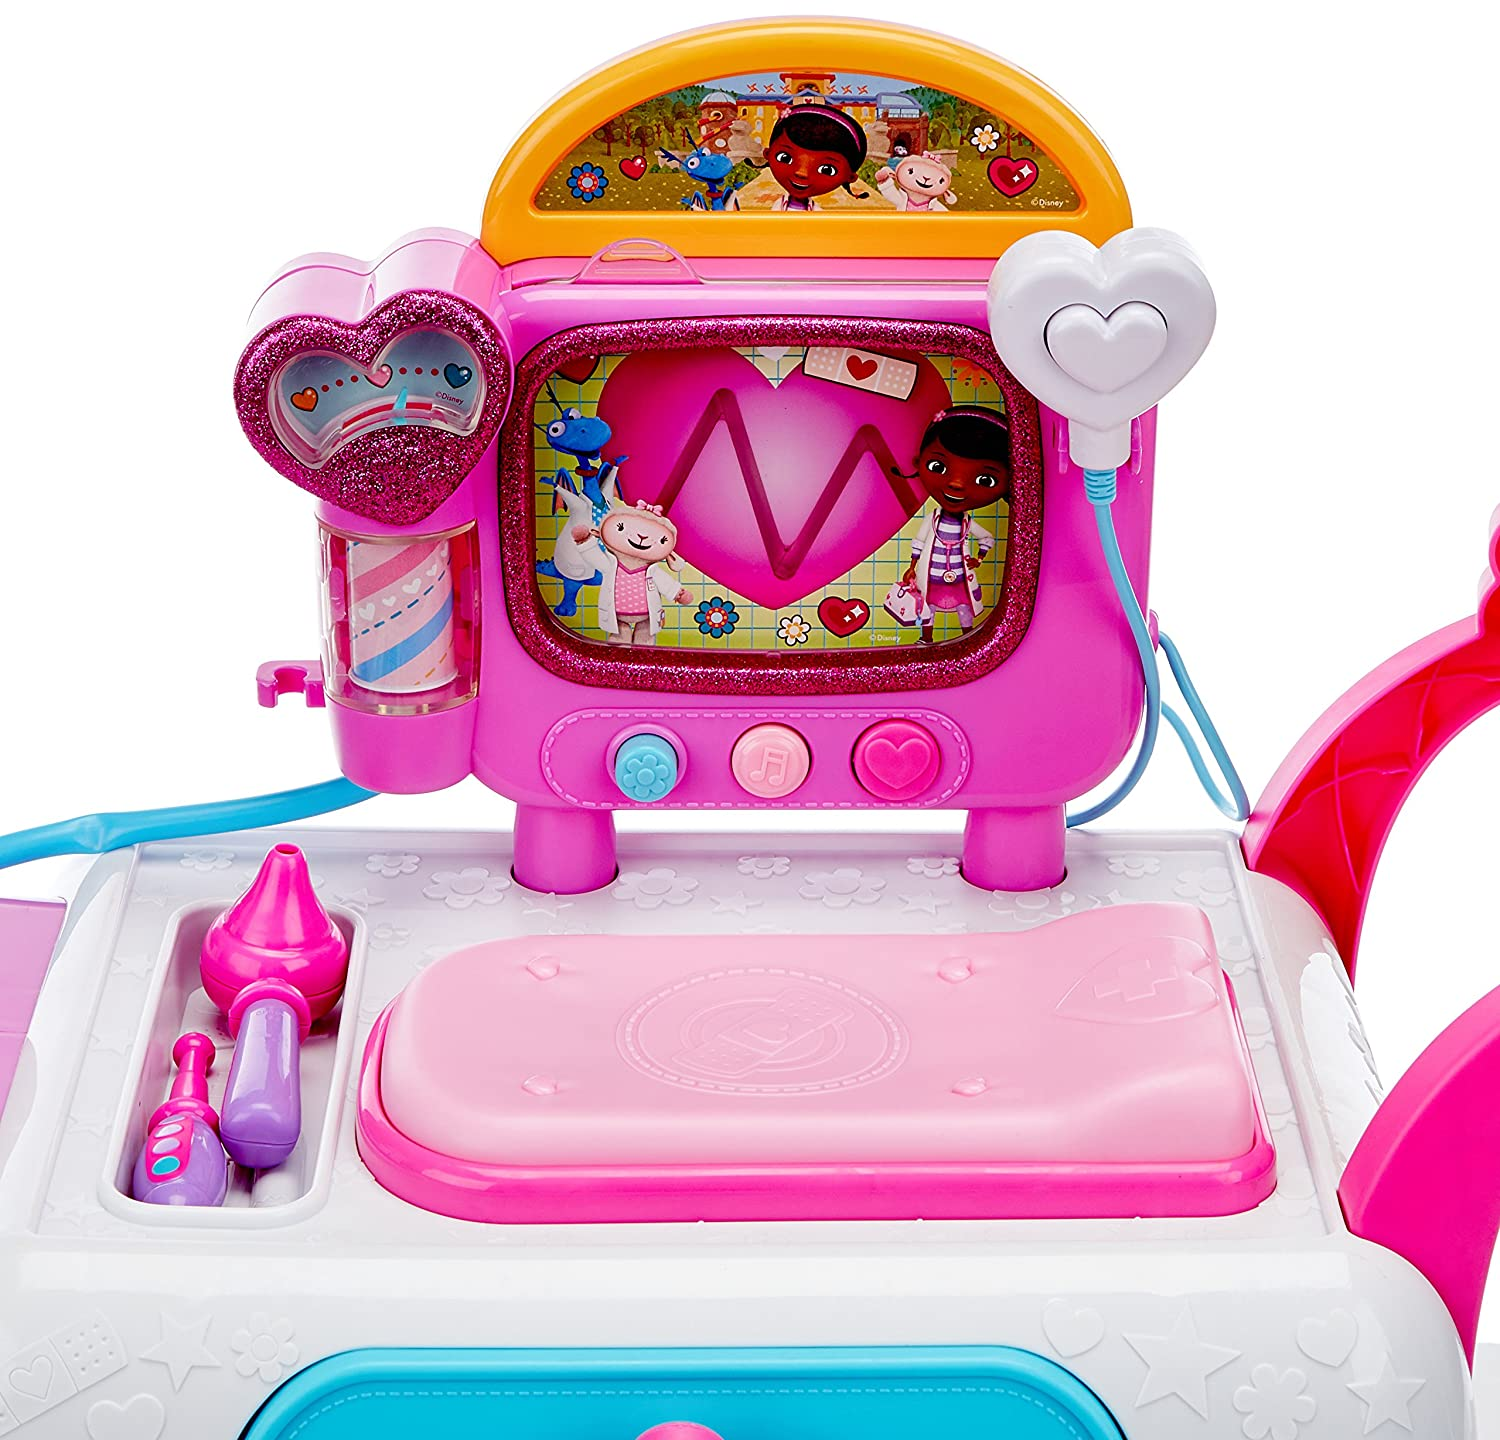 Amazon.com: Doc McStuffins Doc Mcstuffins Hospital Care Cart Toy: Toys & Games